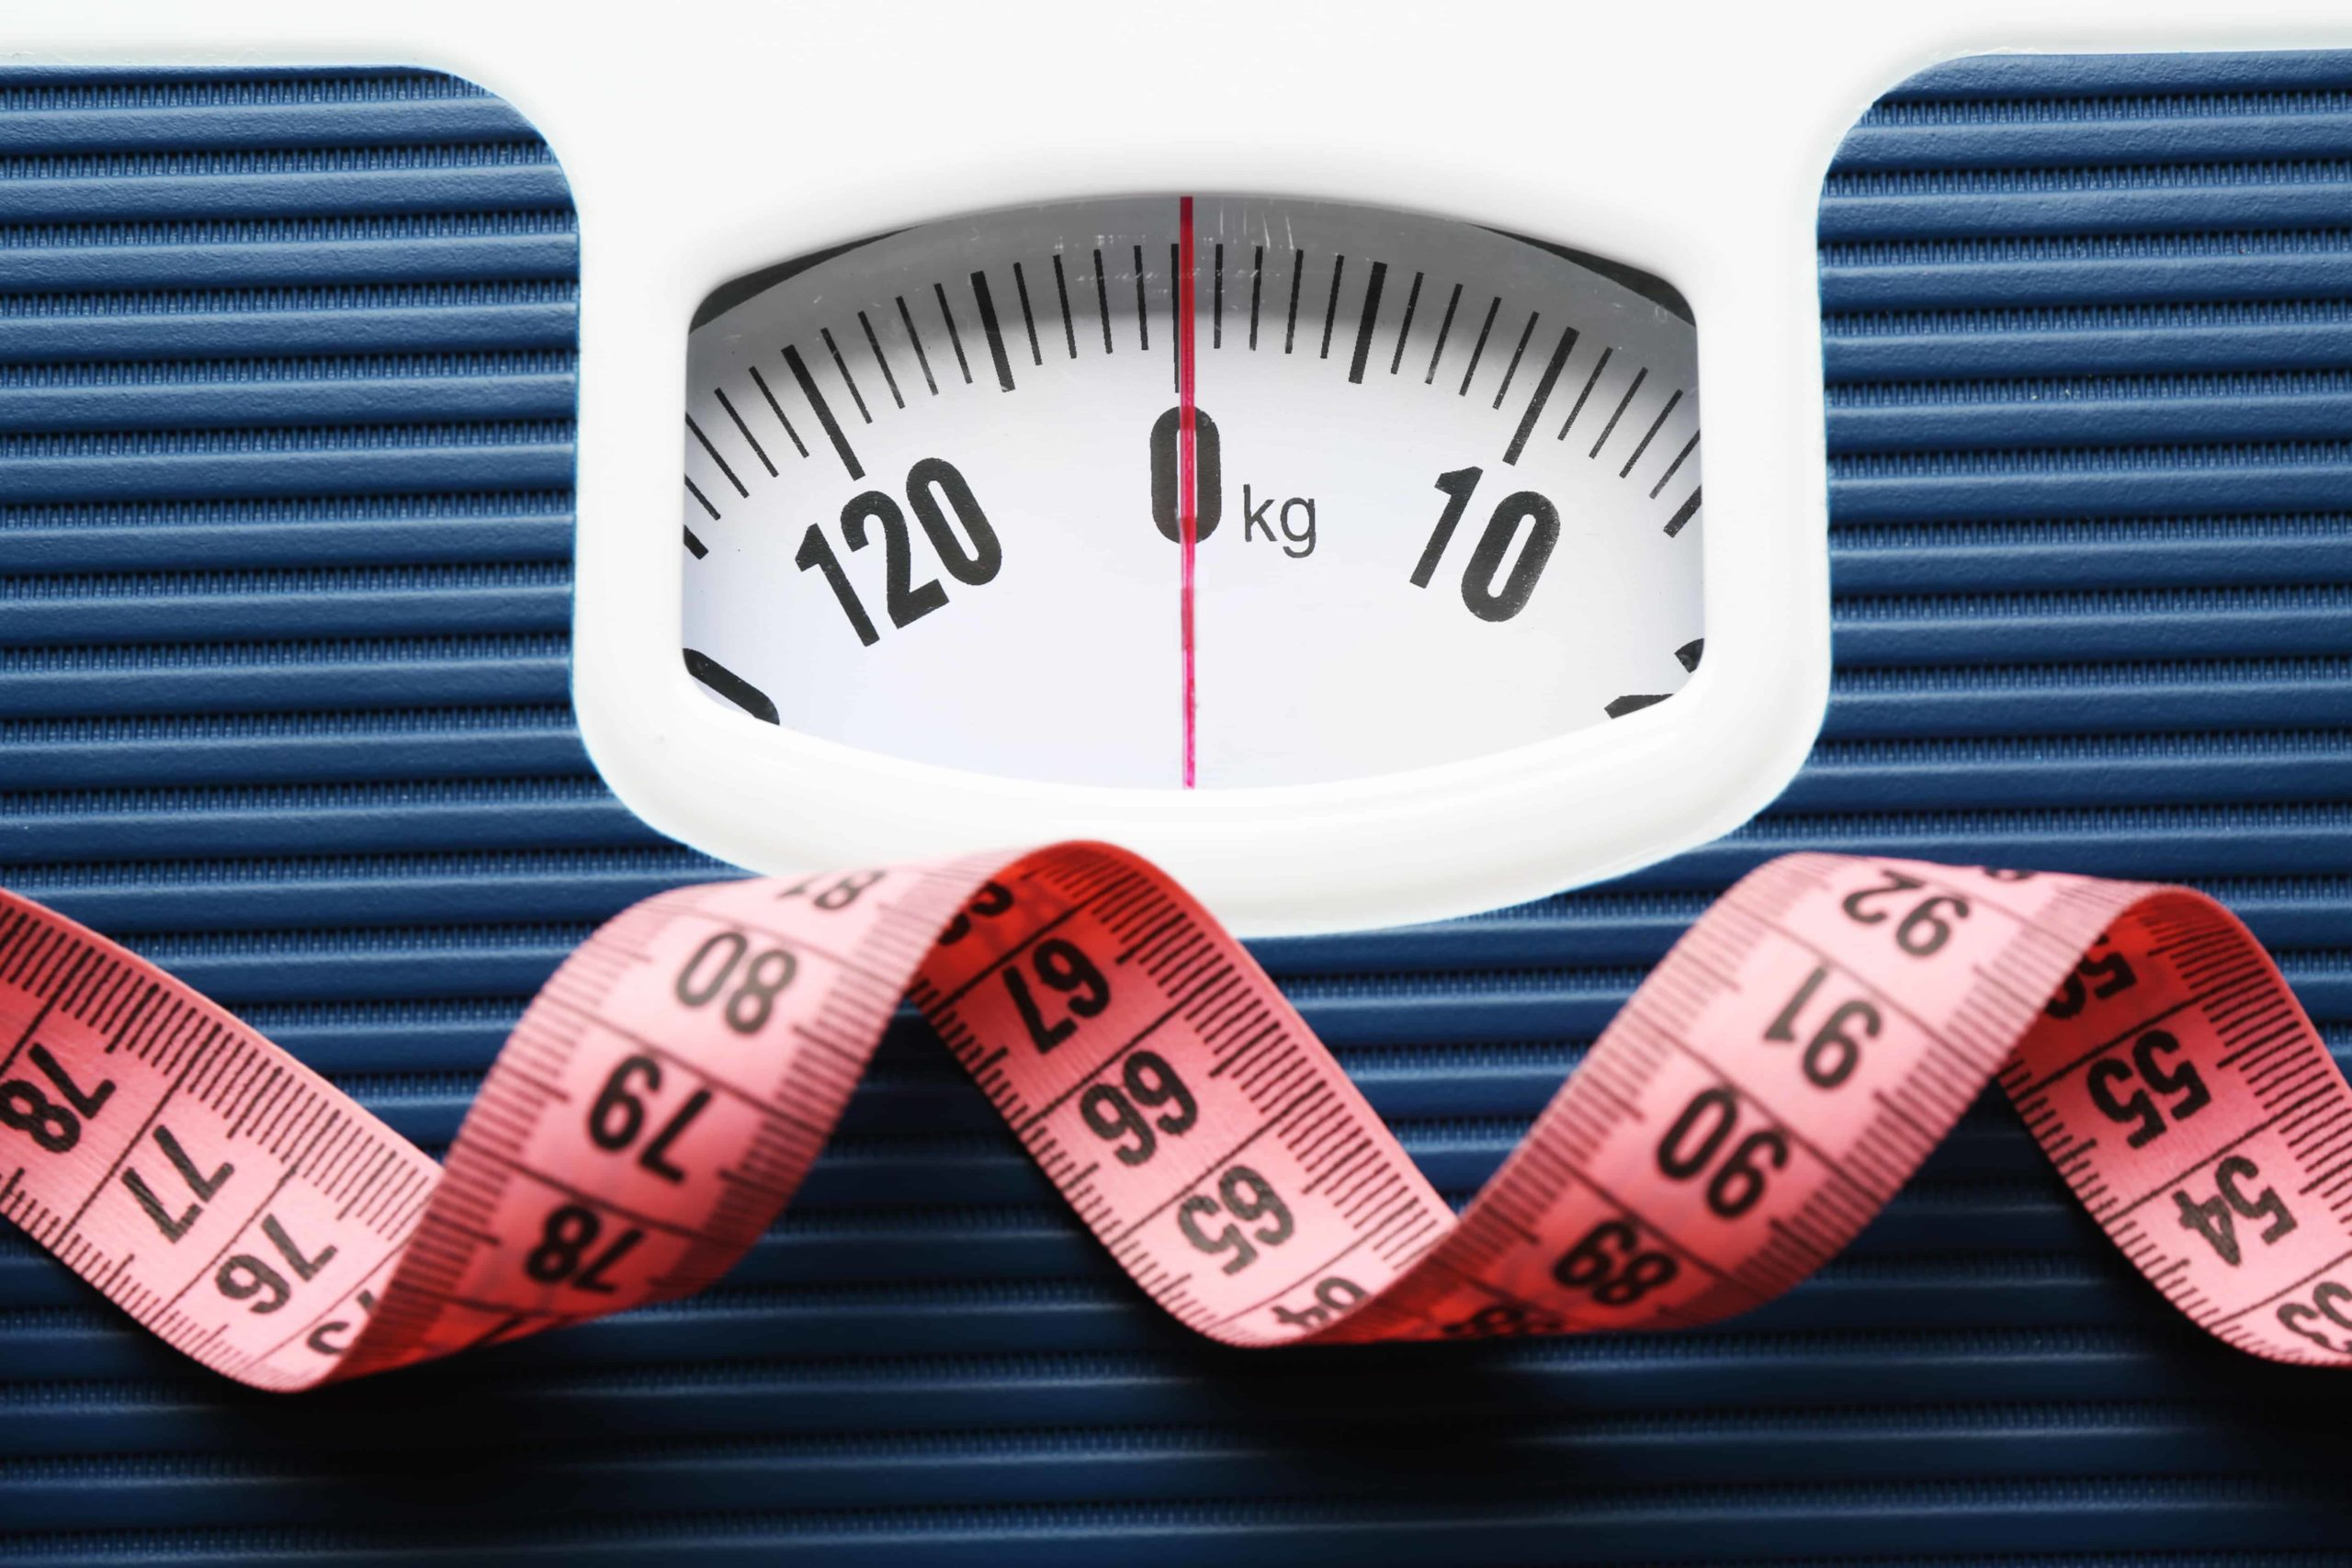 Fat Burners Buying Guide For Natural Weight Loss